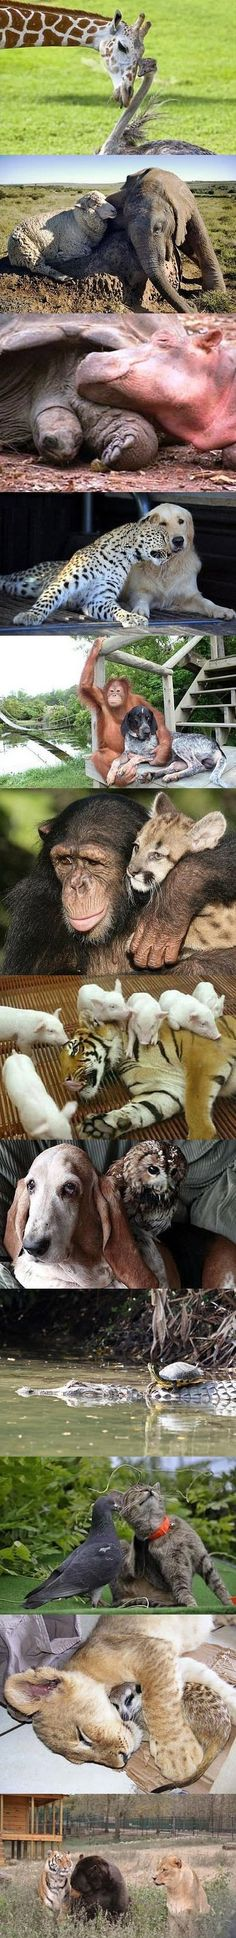 Unlikely Friendships #animals